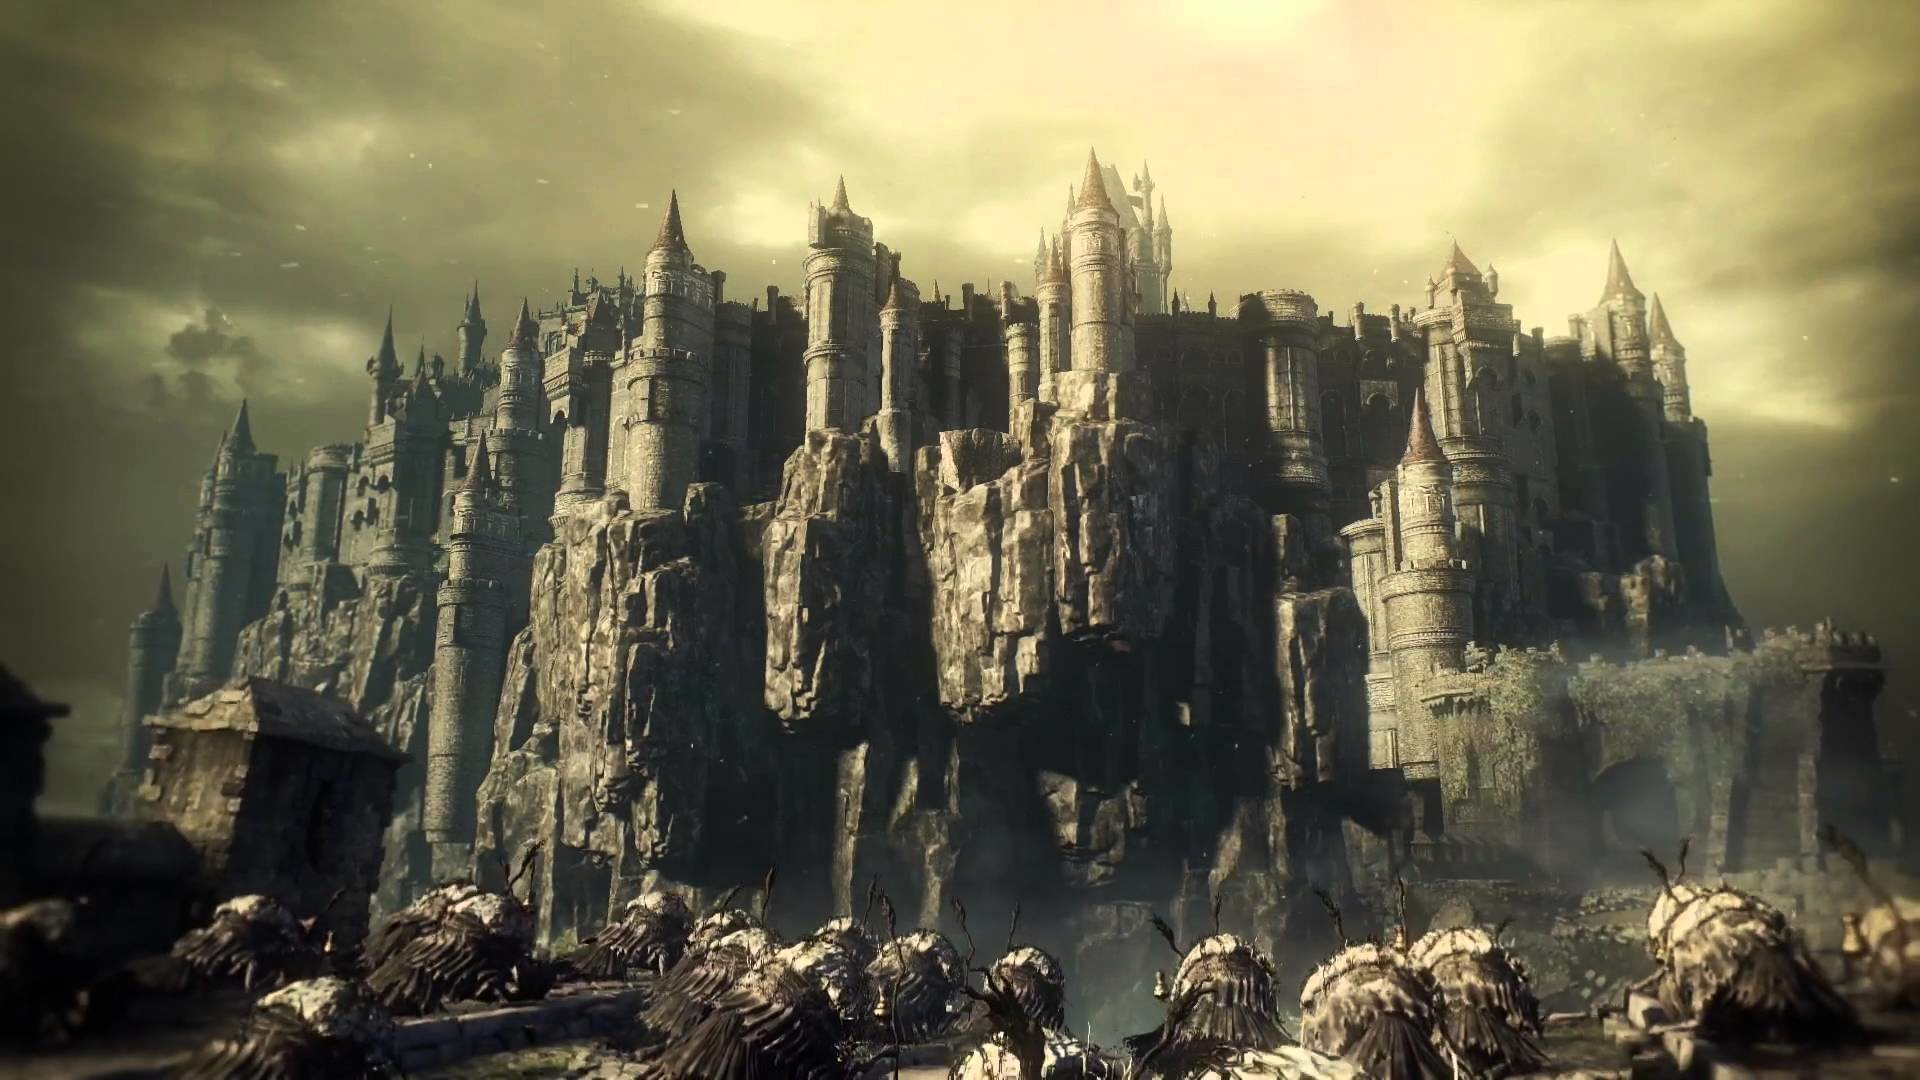 Dark Souls Ii Out Stunning Wallpapers High Quality: Dark Souls 3 Wallpaper 1920x1080 (77+ Images